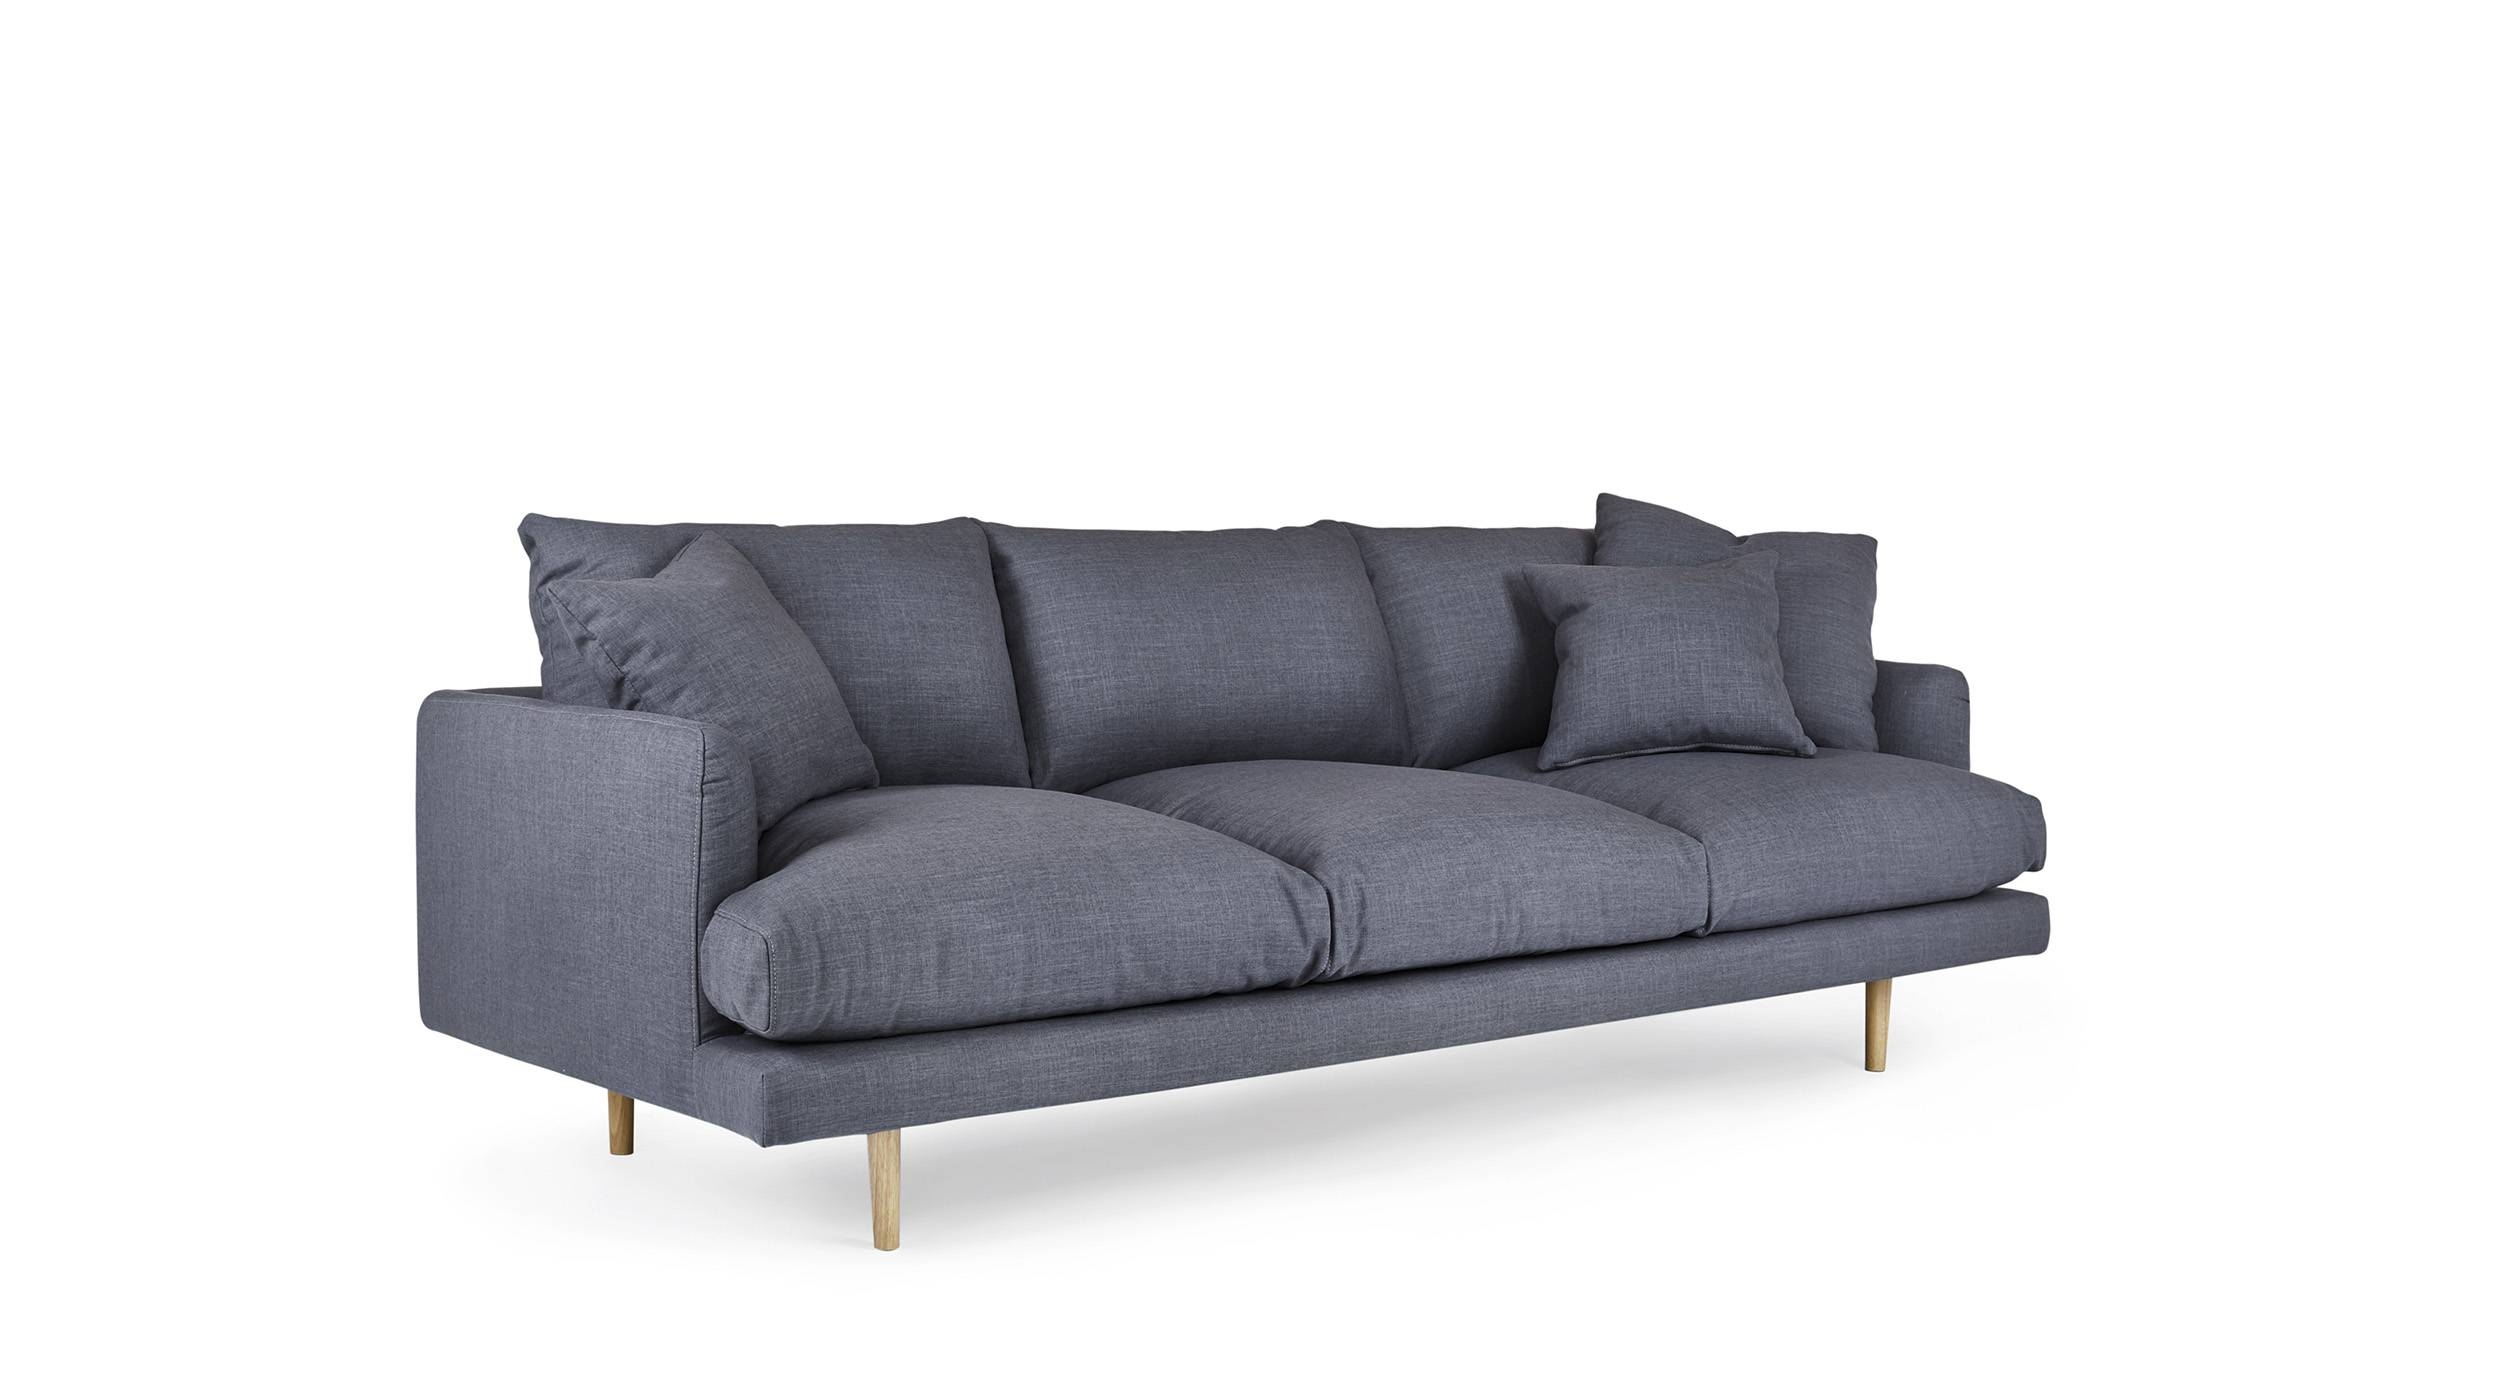 Hampton - 4 Seat Sofa | Loungelovers inside 4 Seat Couch (Image 15 of 30)